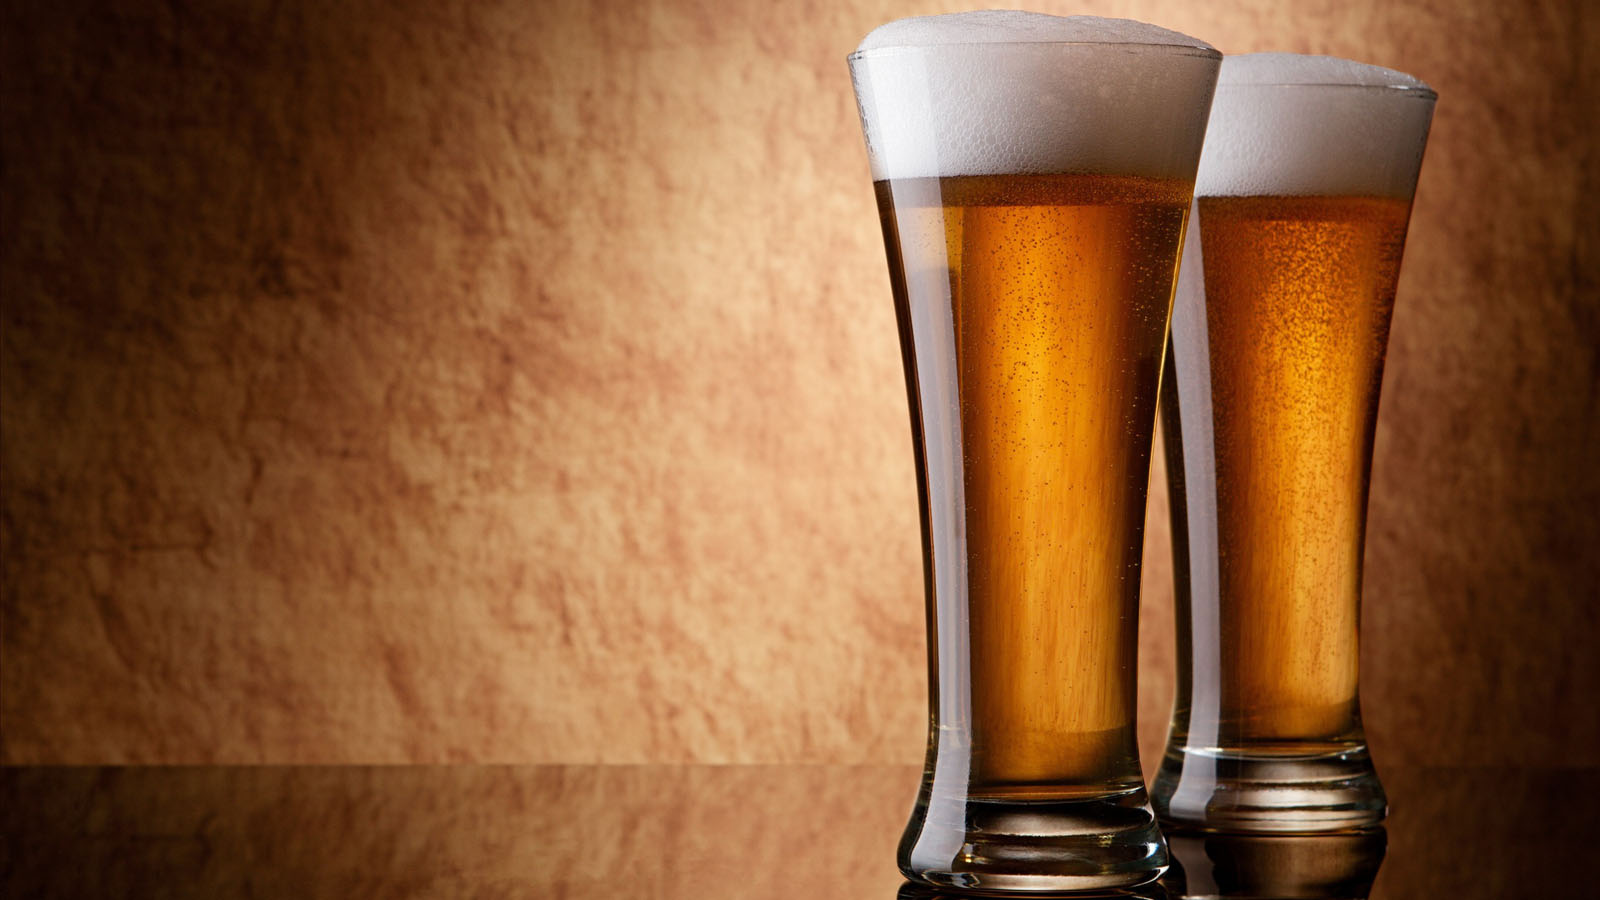 beer-on-glass-hd-desktop-wallpaper